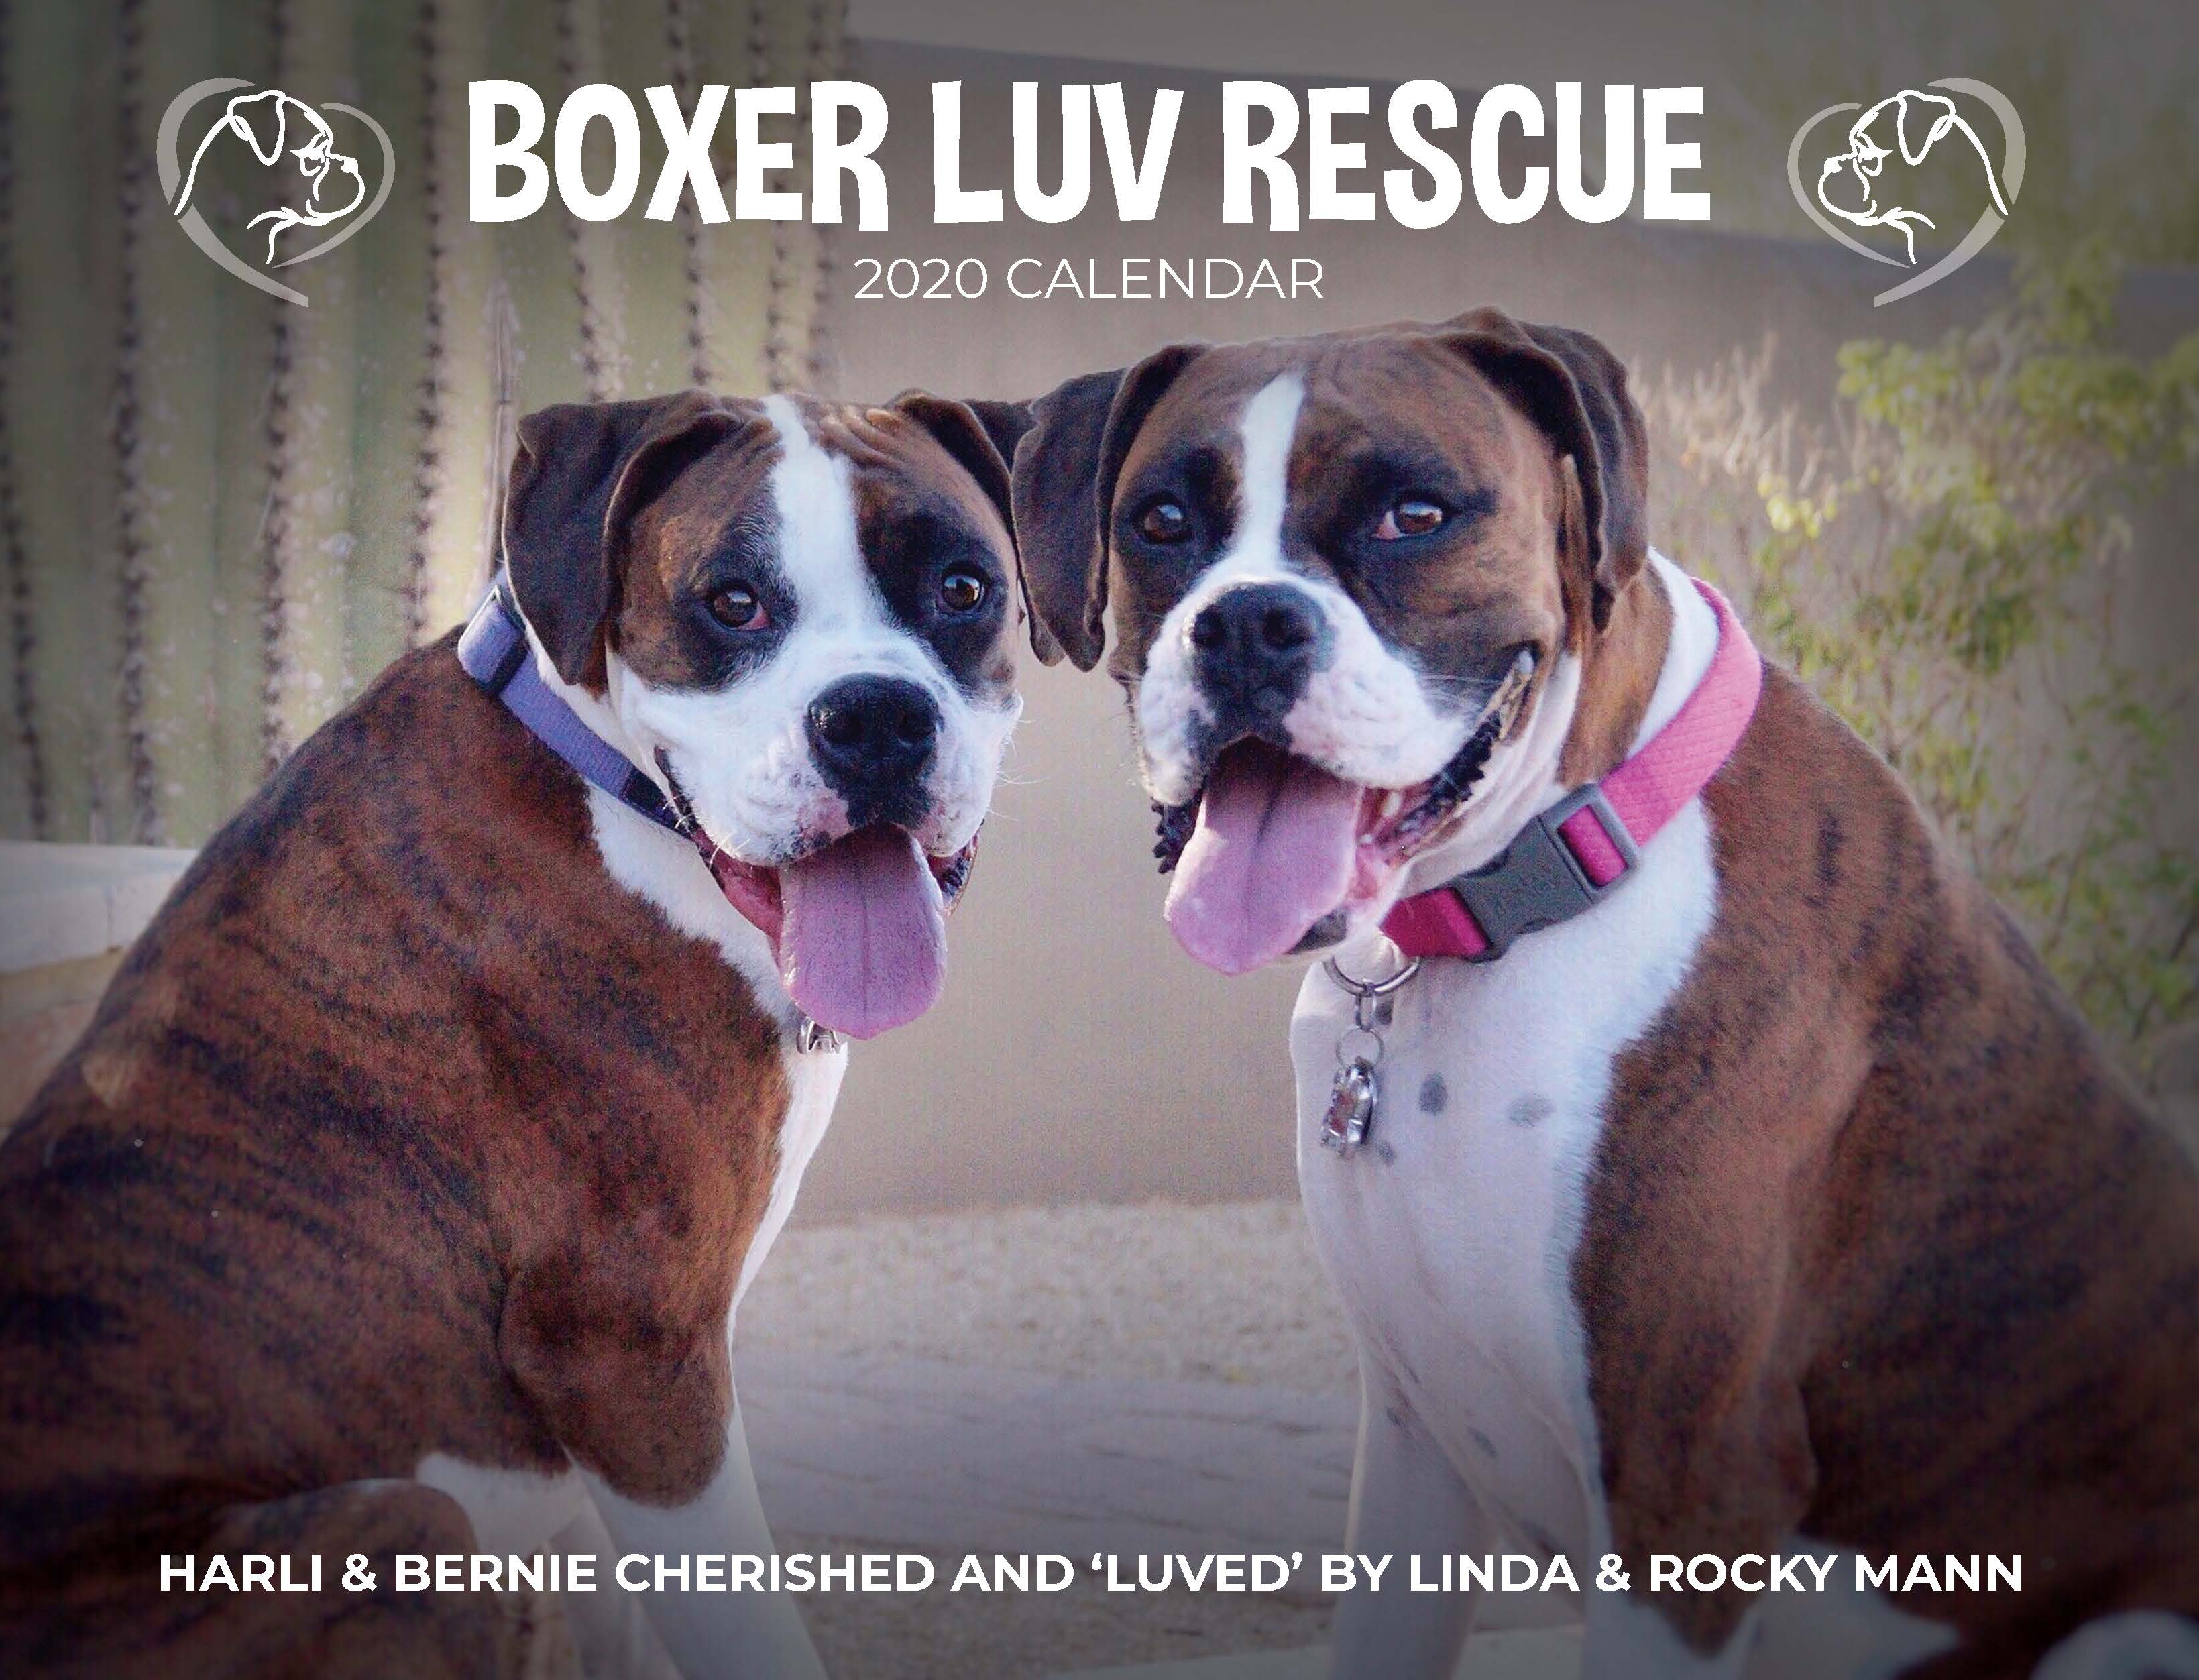 Boxer Luv Rescue annual calendar